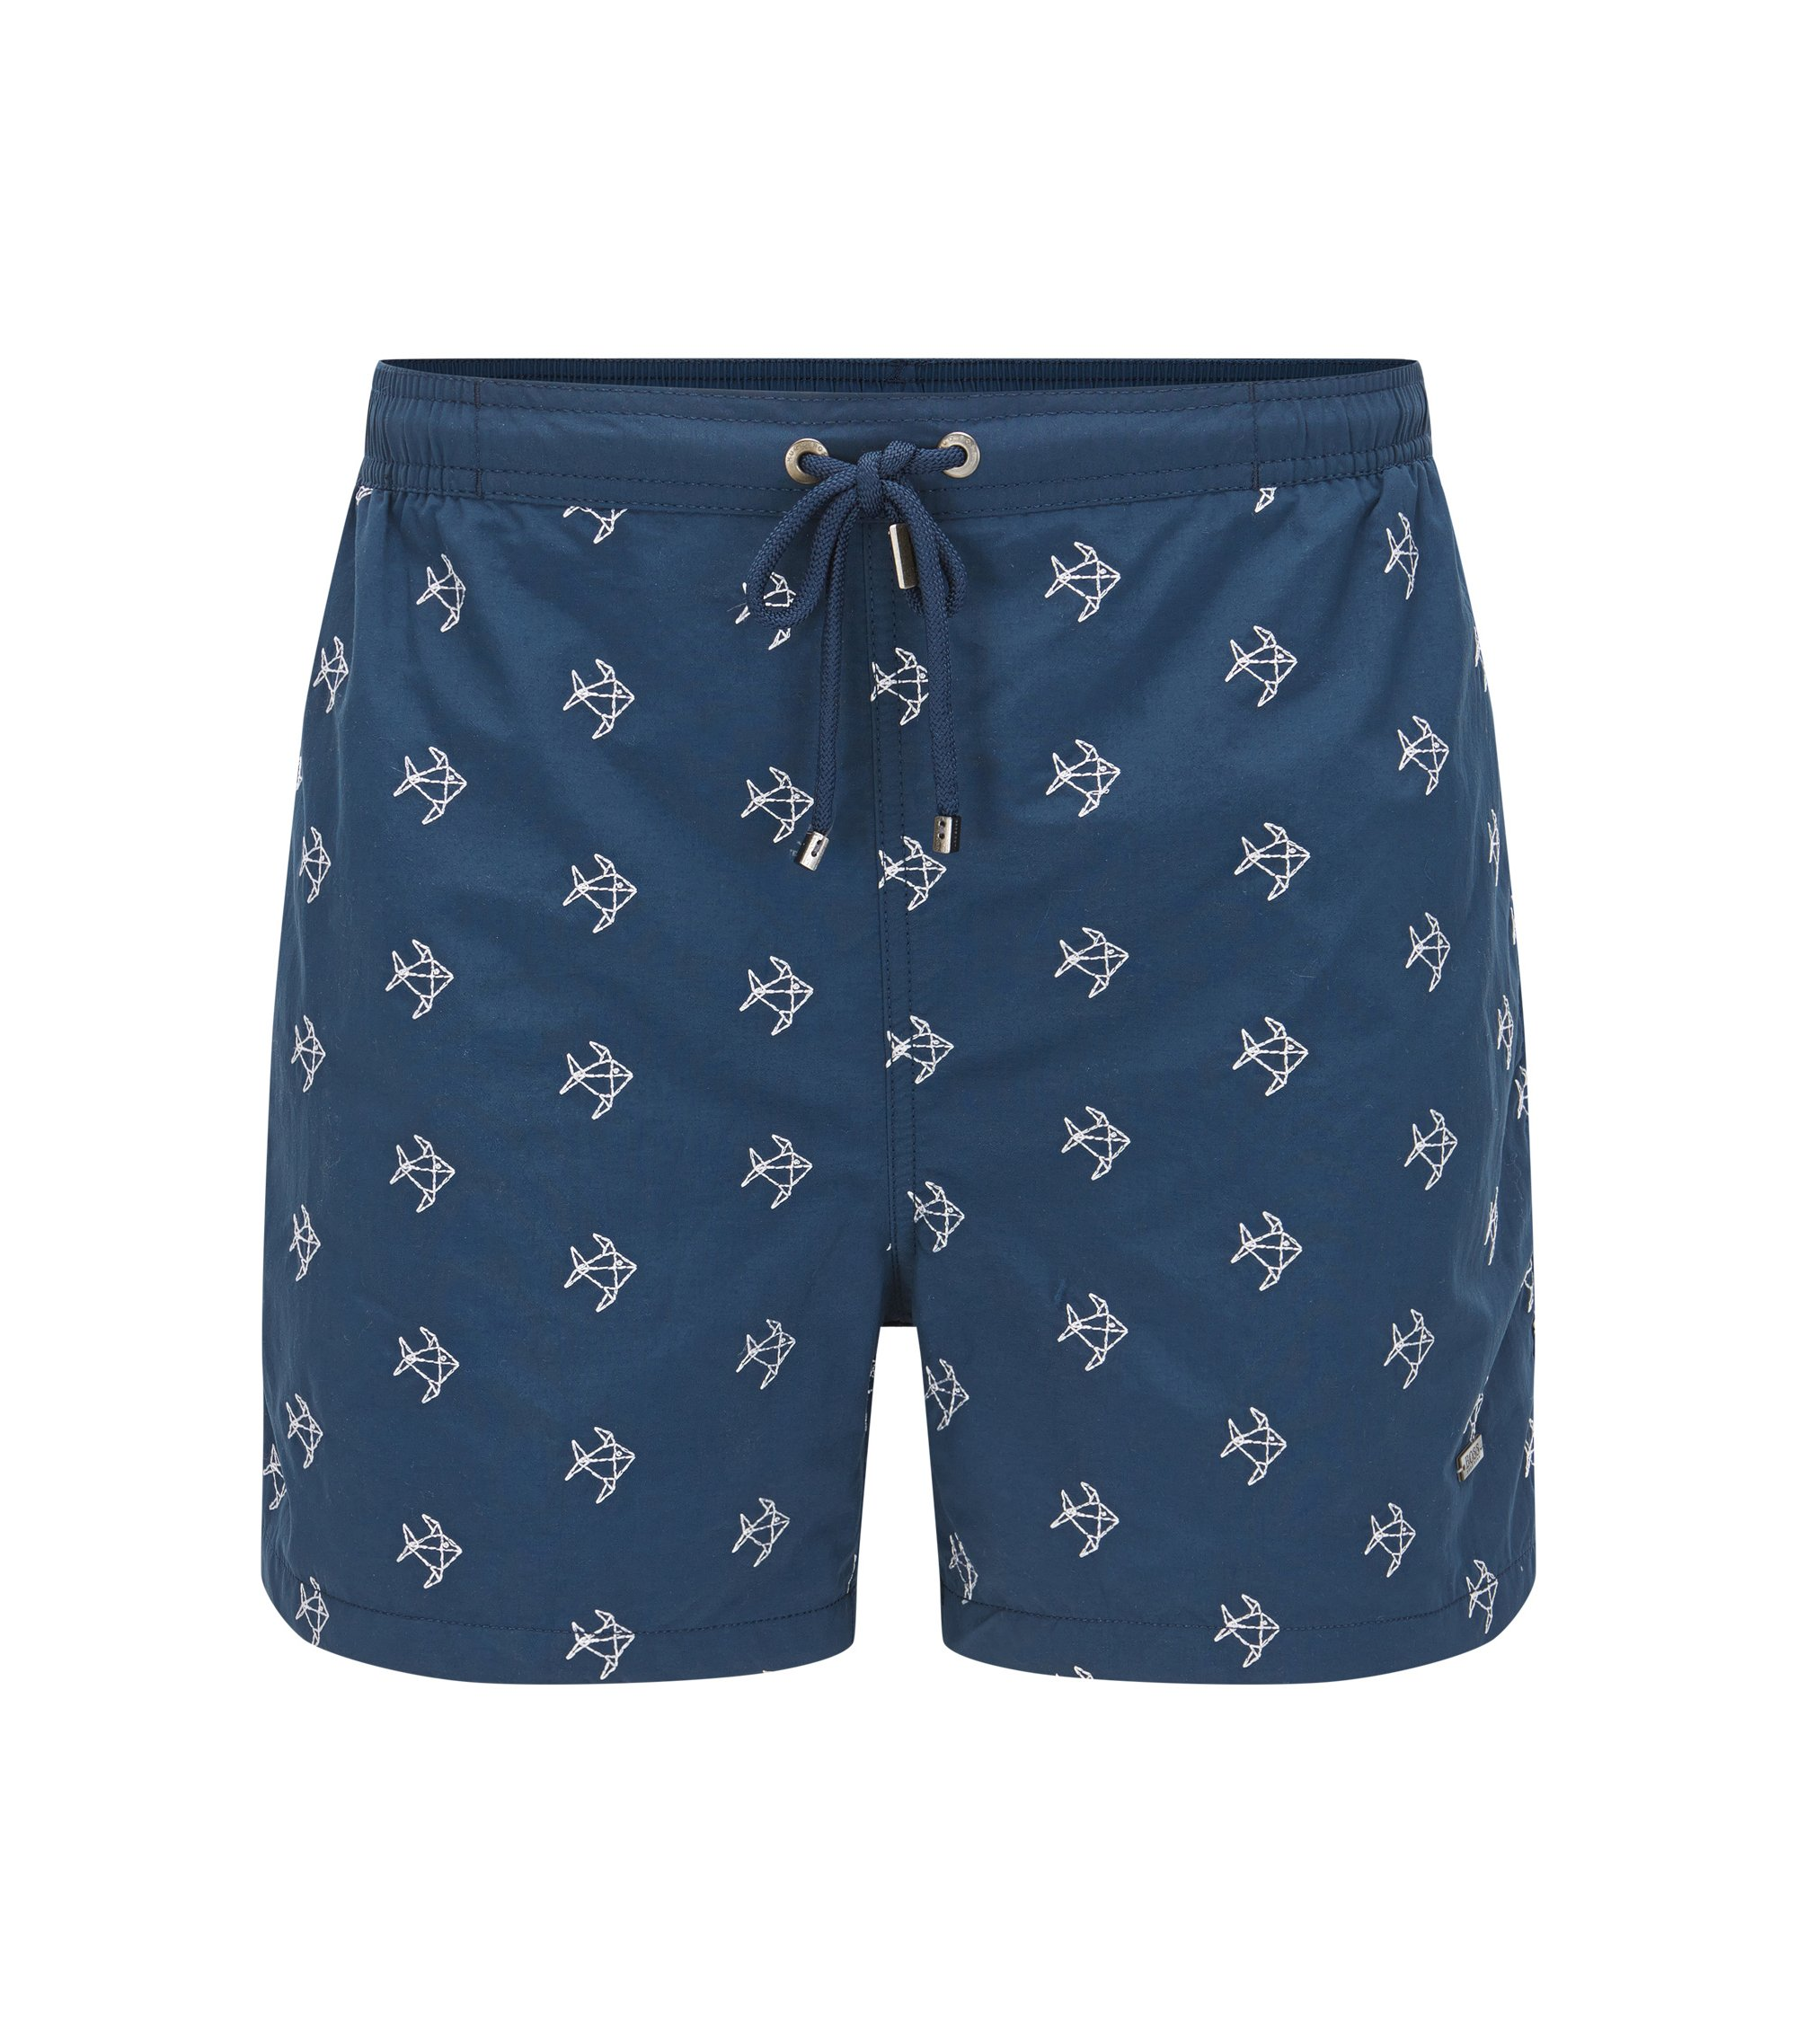 Quick Dry Nylon Embroidered Swim Short | White Shark, Dark Blue